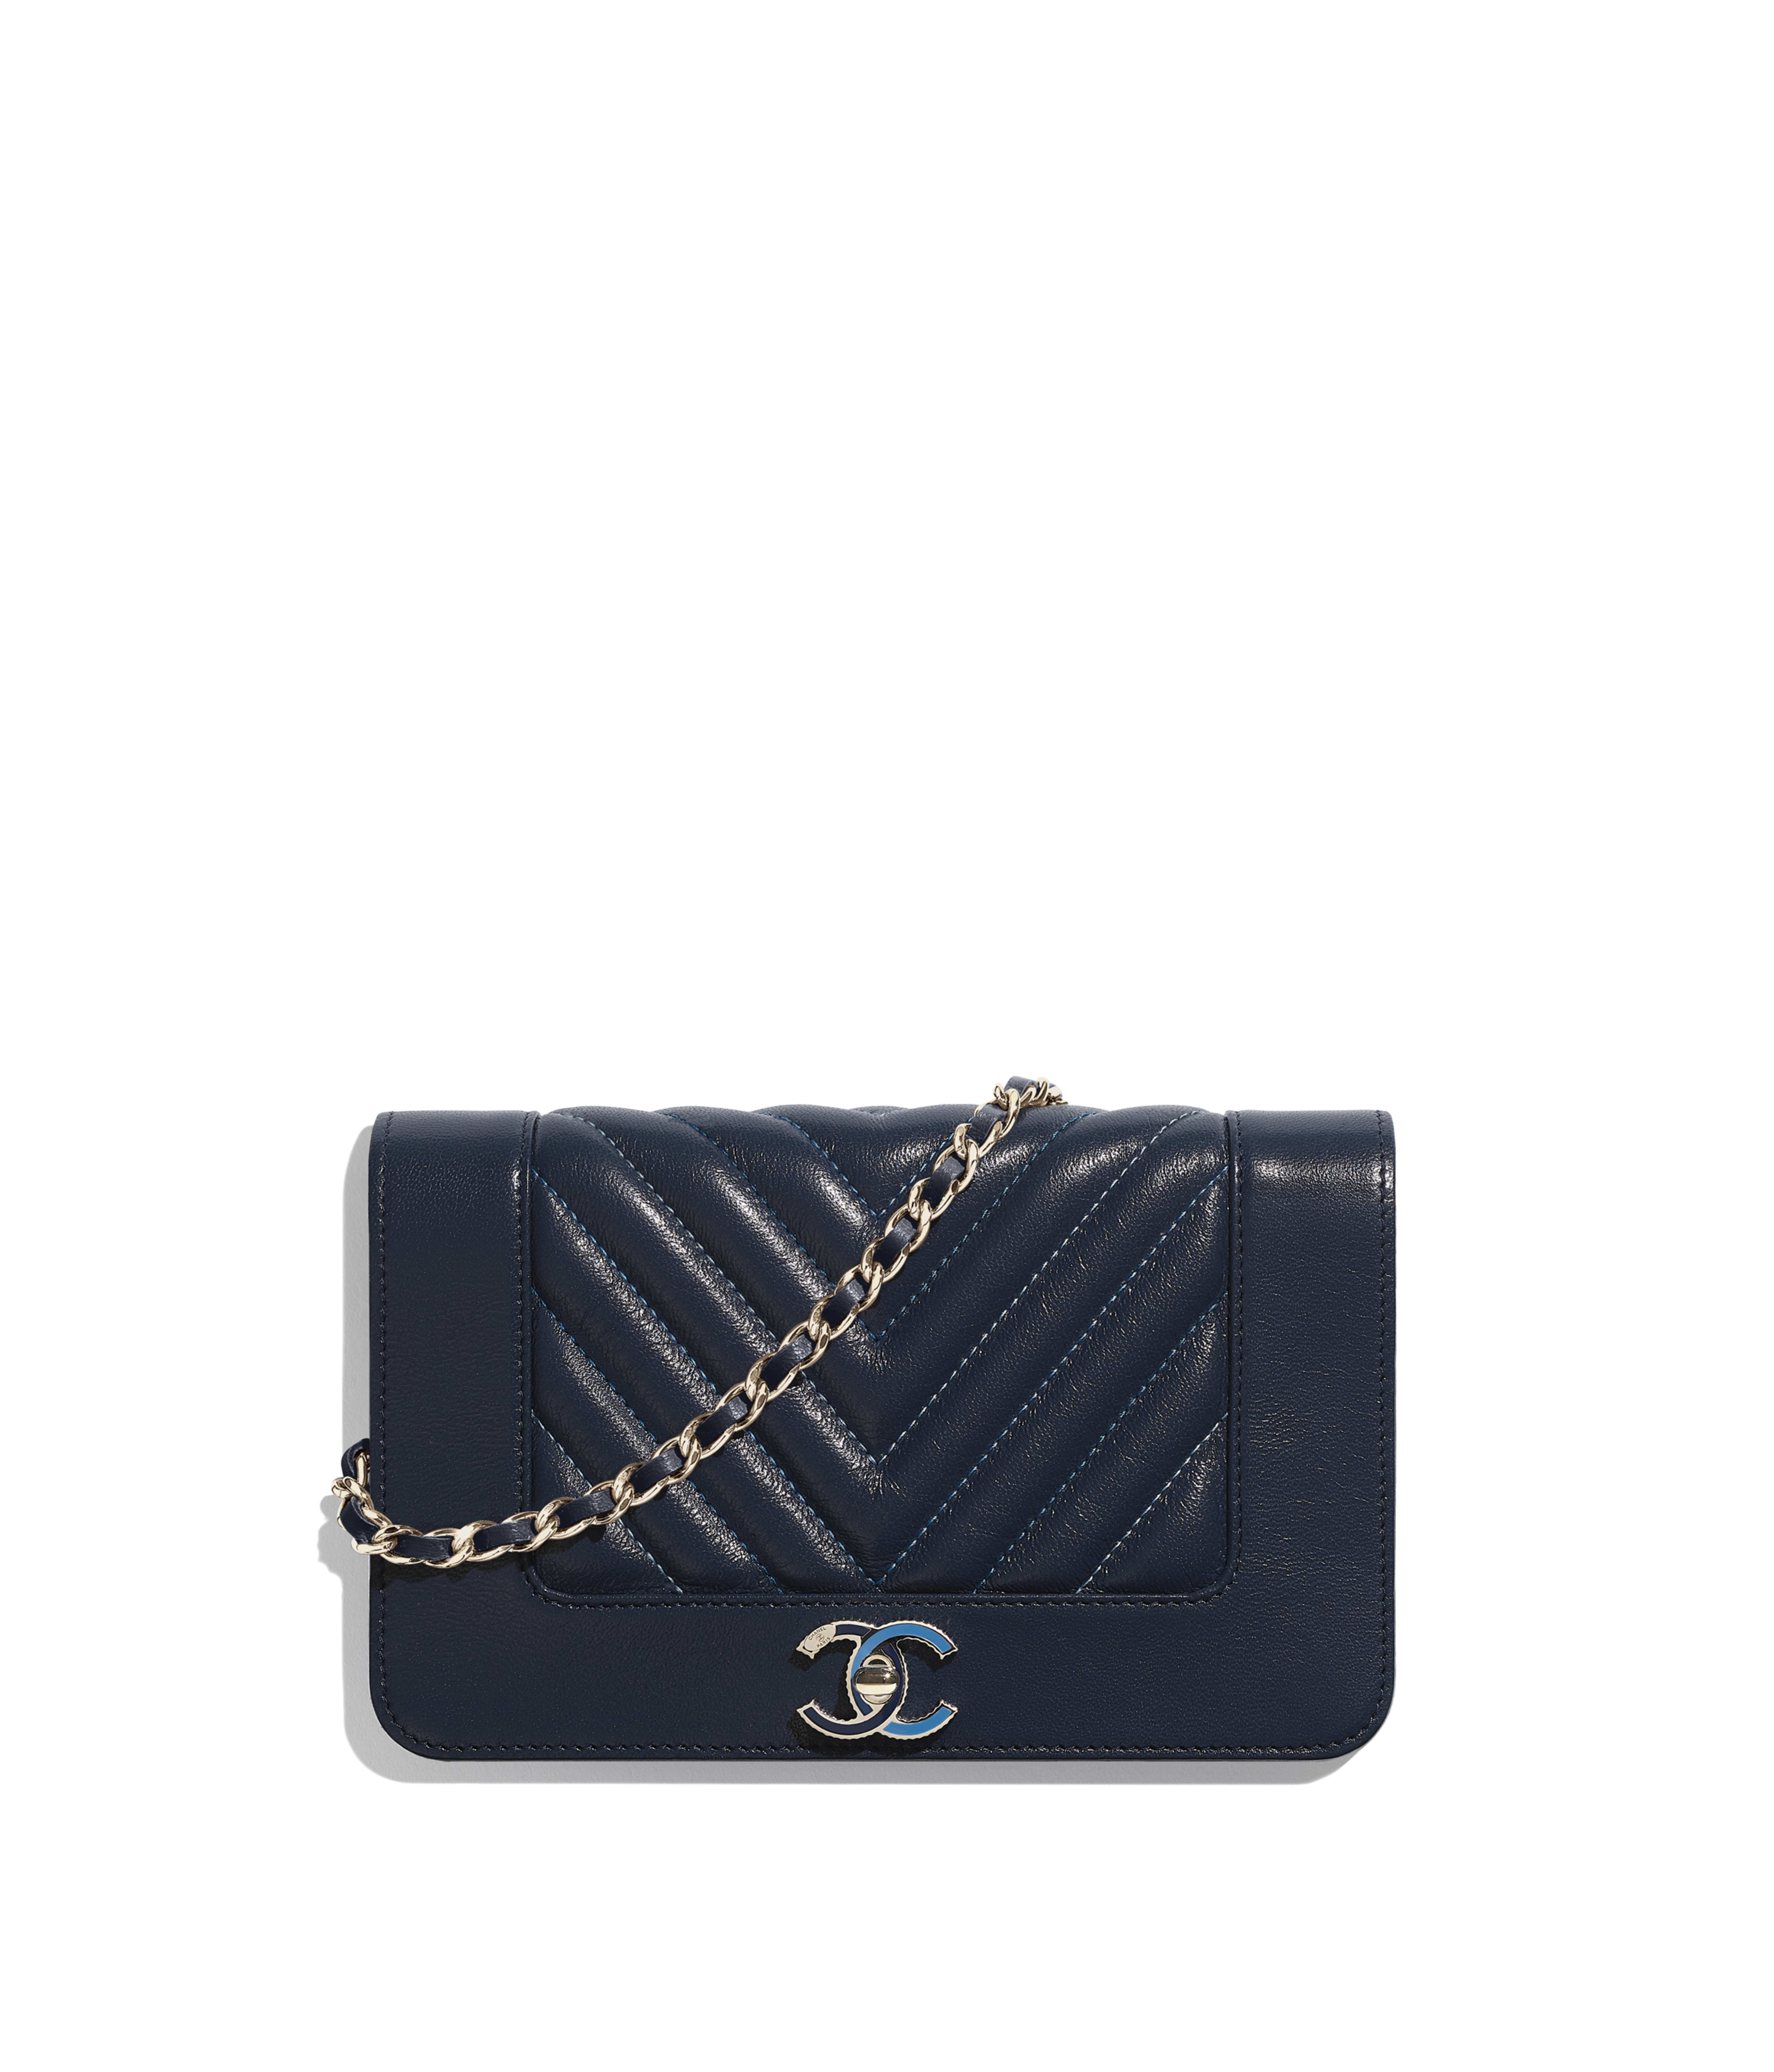 Wallet on Chain Sheepskin   Gold-Tone Metal, Navy Blue Ref.  A80972B00074N0417 8d9848b671